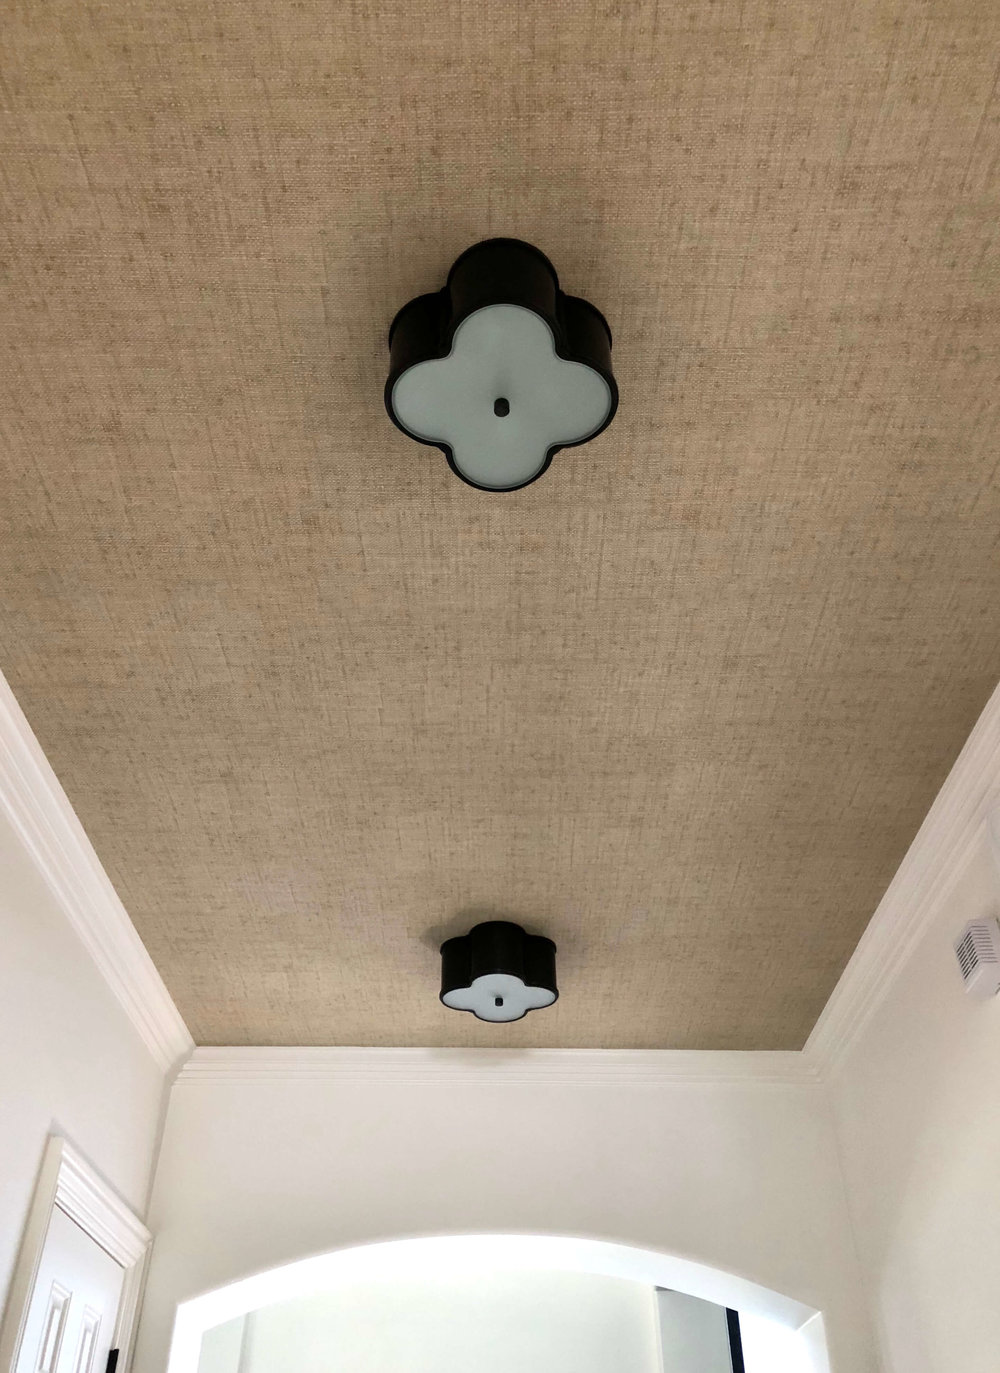 Grasscloth wallcovering on the ceiling makes for a textural, interesting backdrop to some sweet shapely ceiling mount light fixtures. #remodelingideas #ceilingdesign #lighting